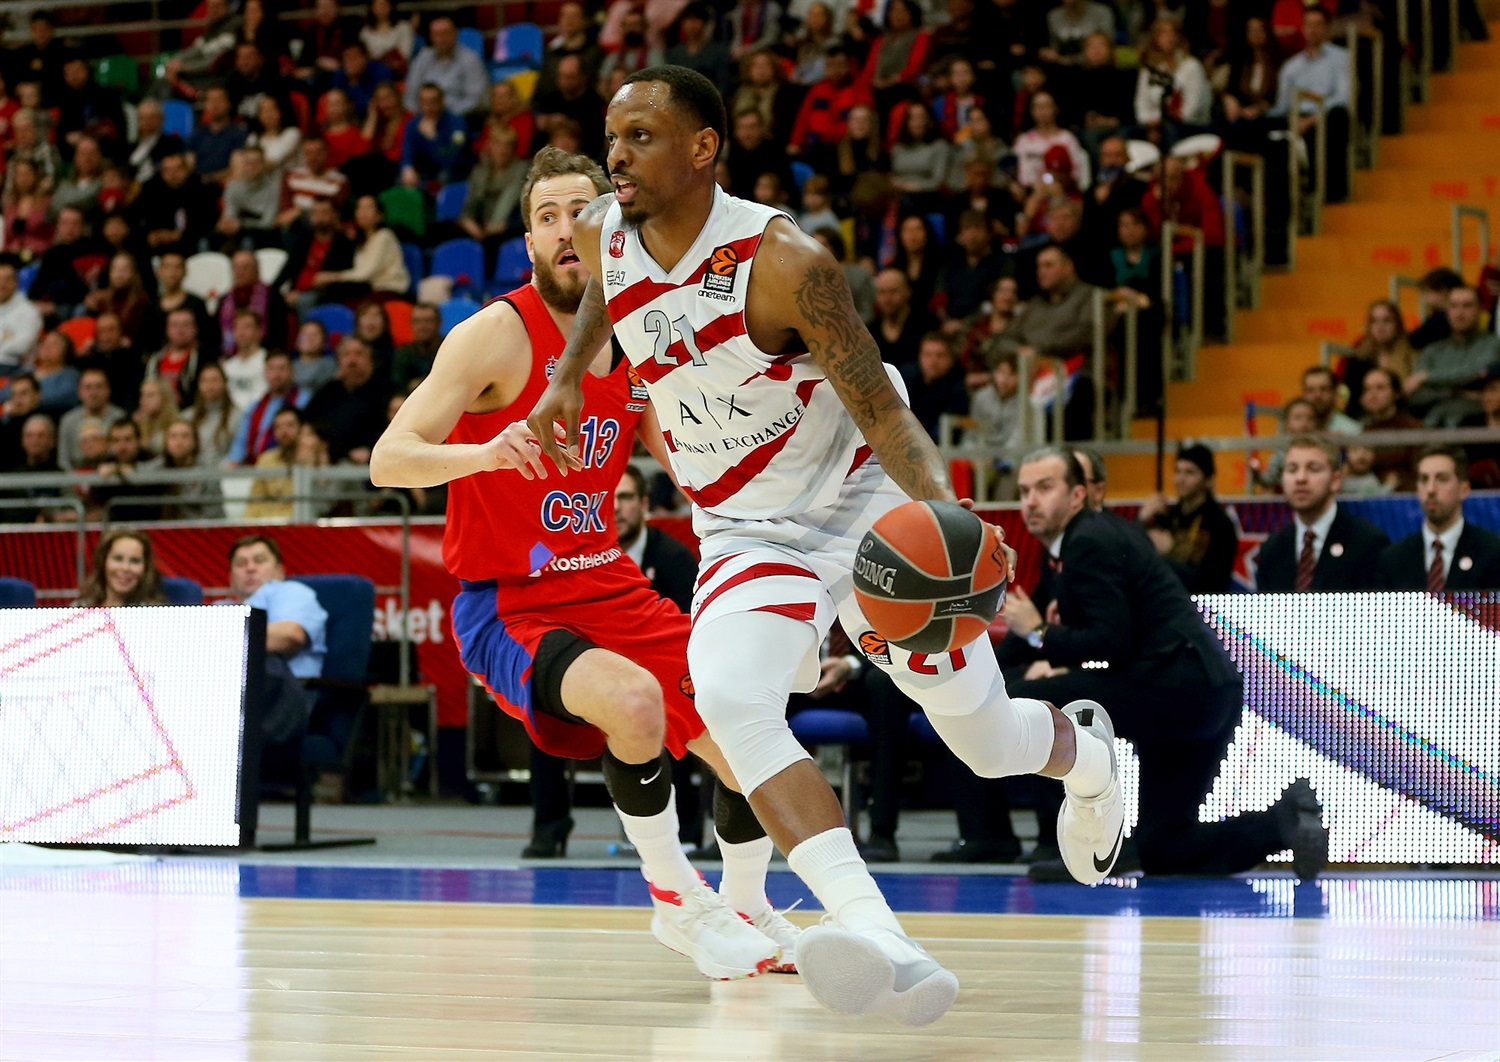 James Nunnally - AX Armani Exchange Olimpia Milan - EB18